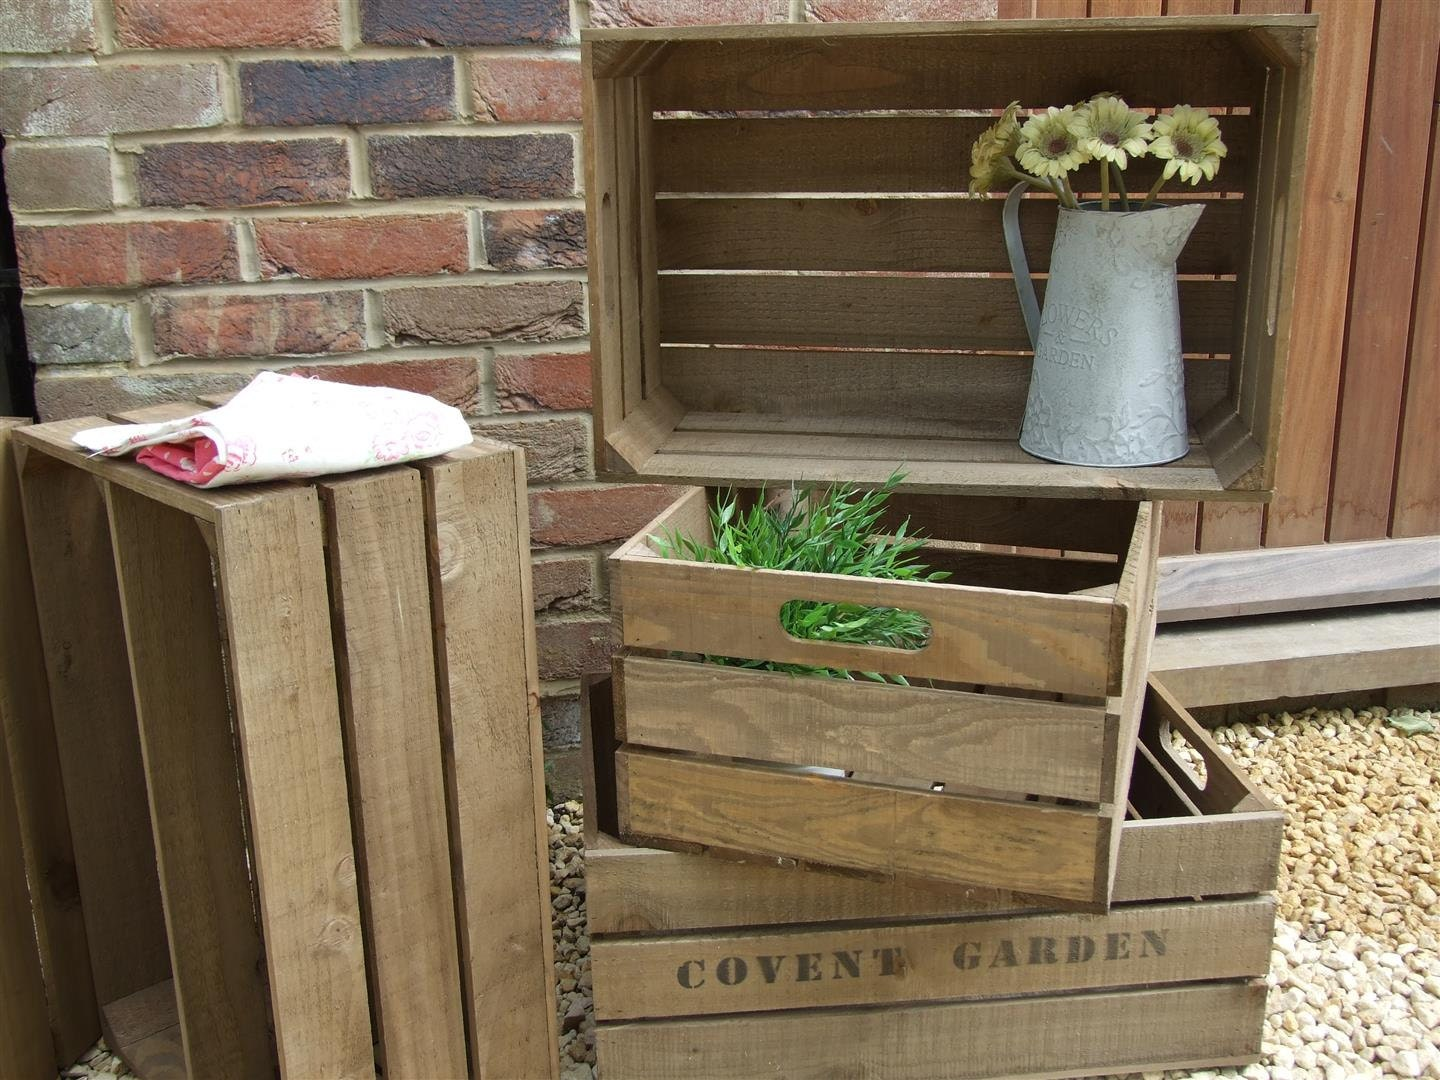 Vintage Style WOODEN APPLE CRATE Shabby Chic Fruit Crate Wooden Crate applecrates apple crates